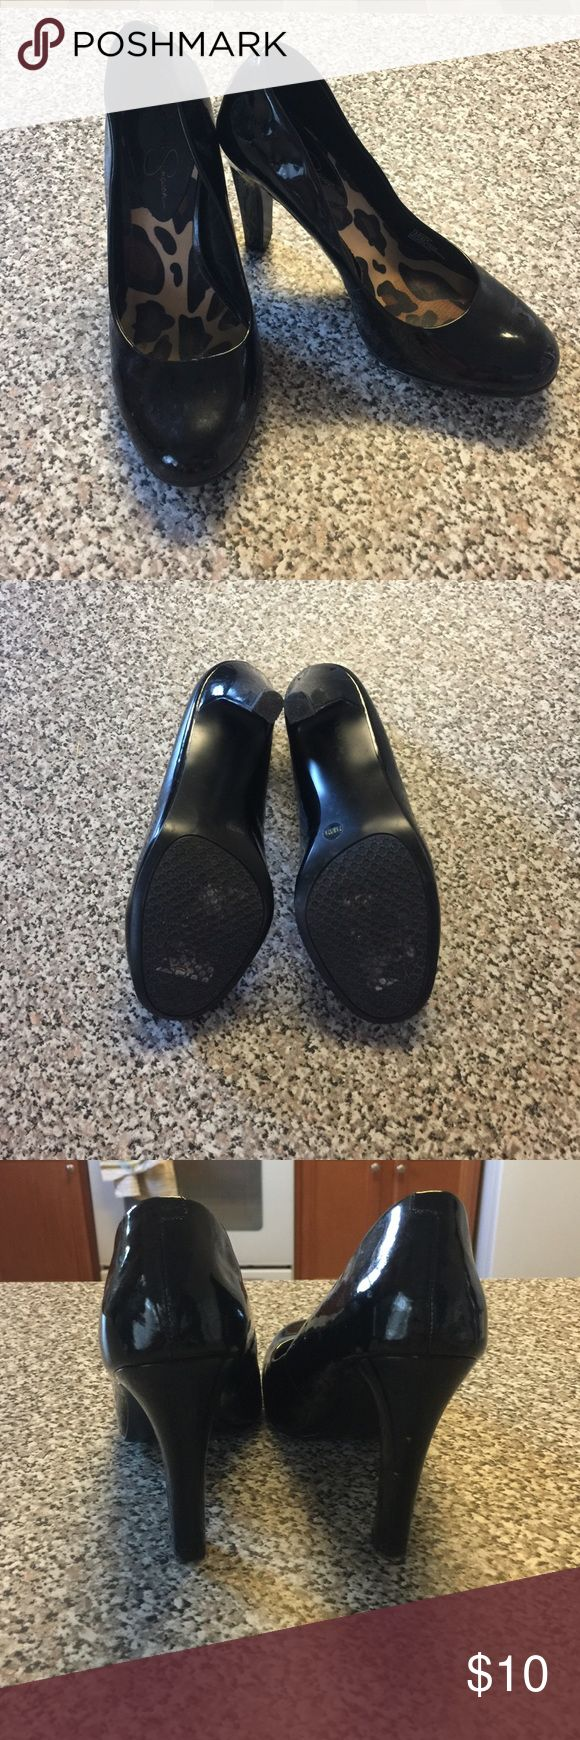 Jessica Simpson Pumps Black Jessica Simpson pumps in good condition. Heel height: approx 3 in. Jessica Simpson Shoes Heels